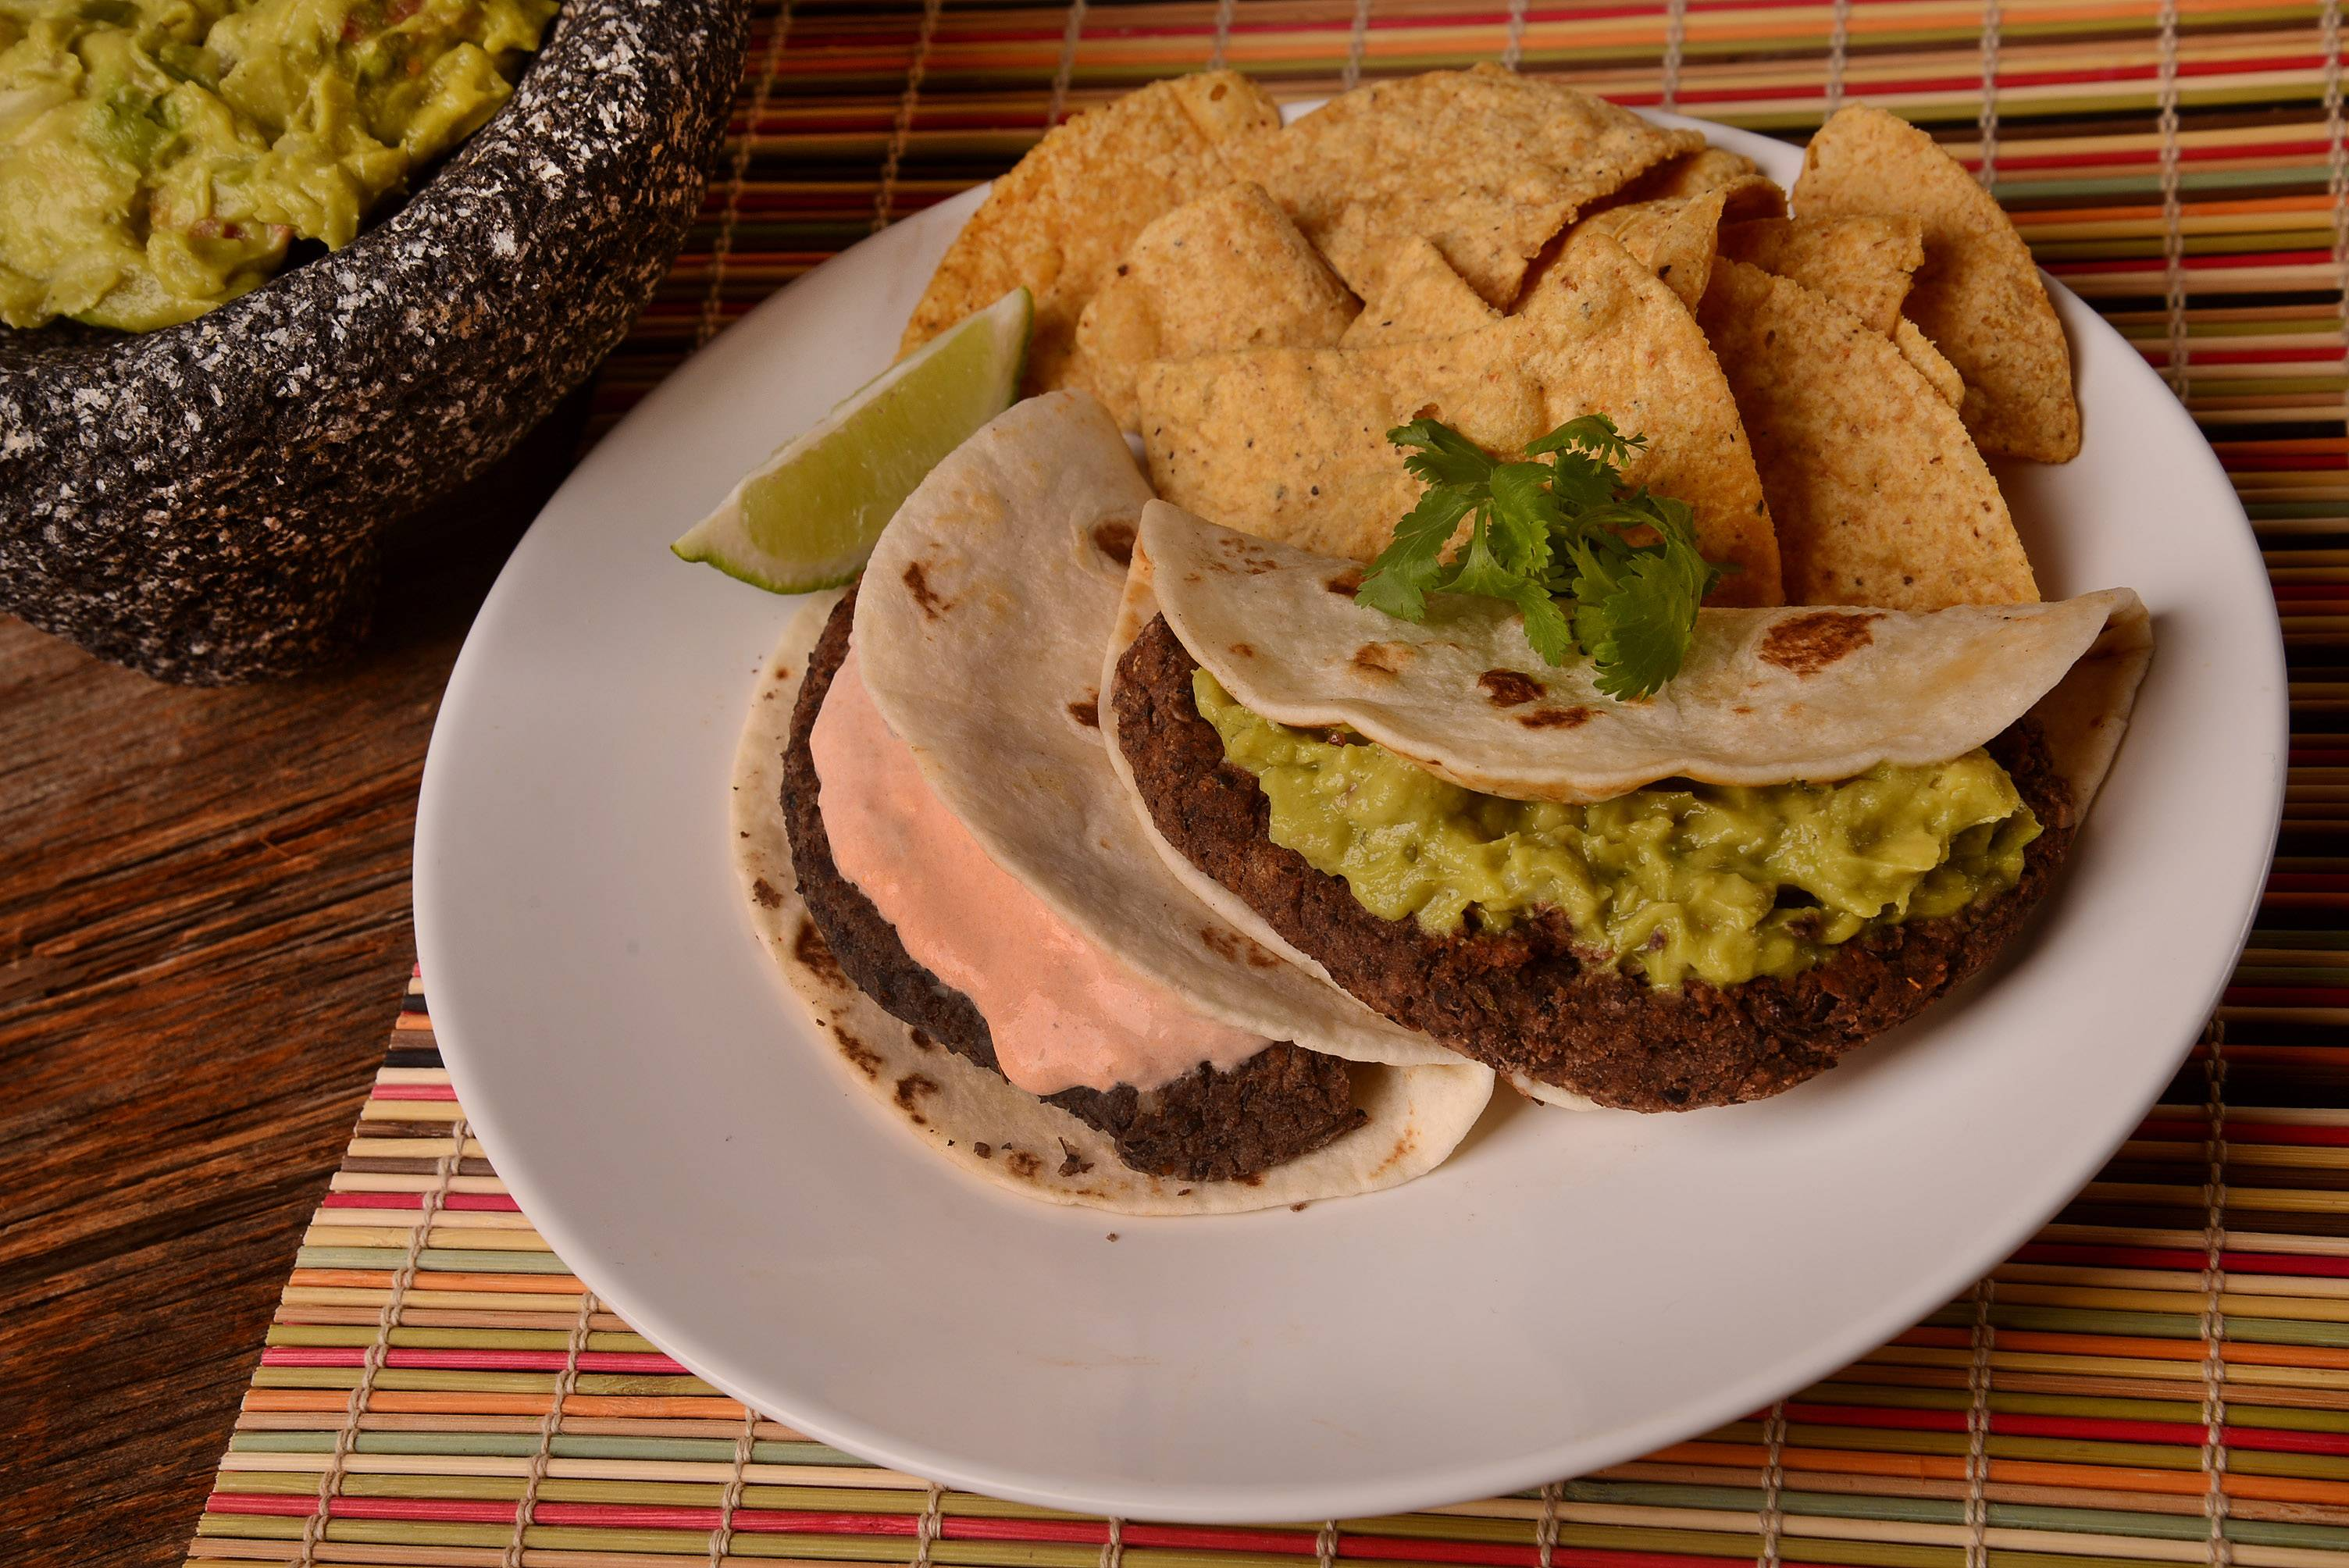 For a vegetarian spin on burgers, try these mildly spicy black bean patties nestled between tortillas and topped with creamy salsa or guacamole.